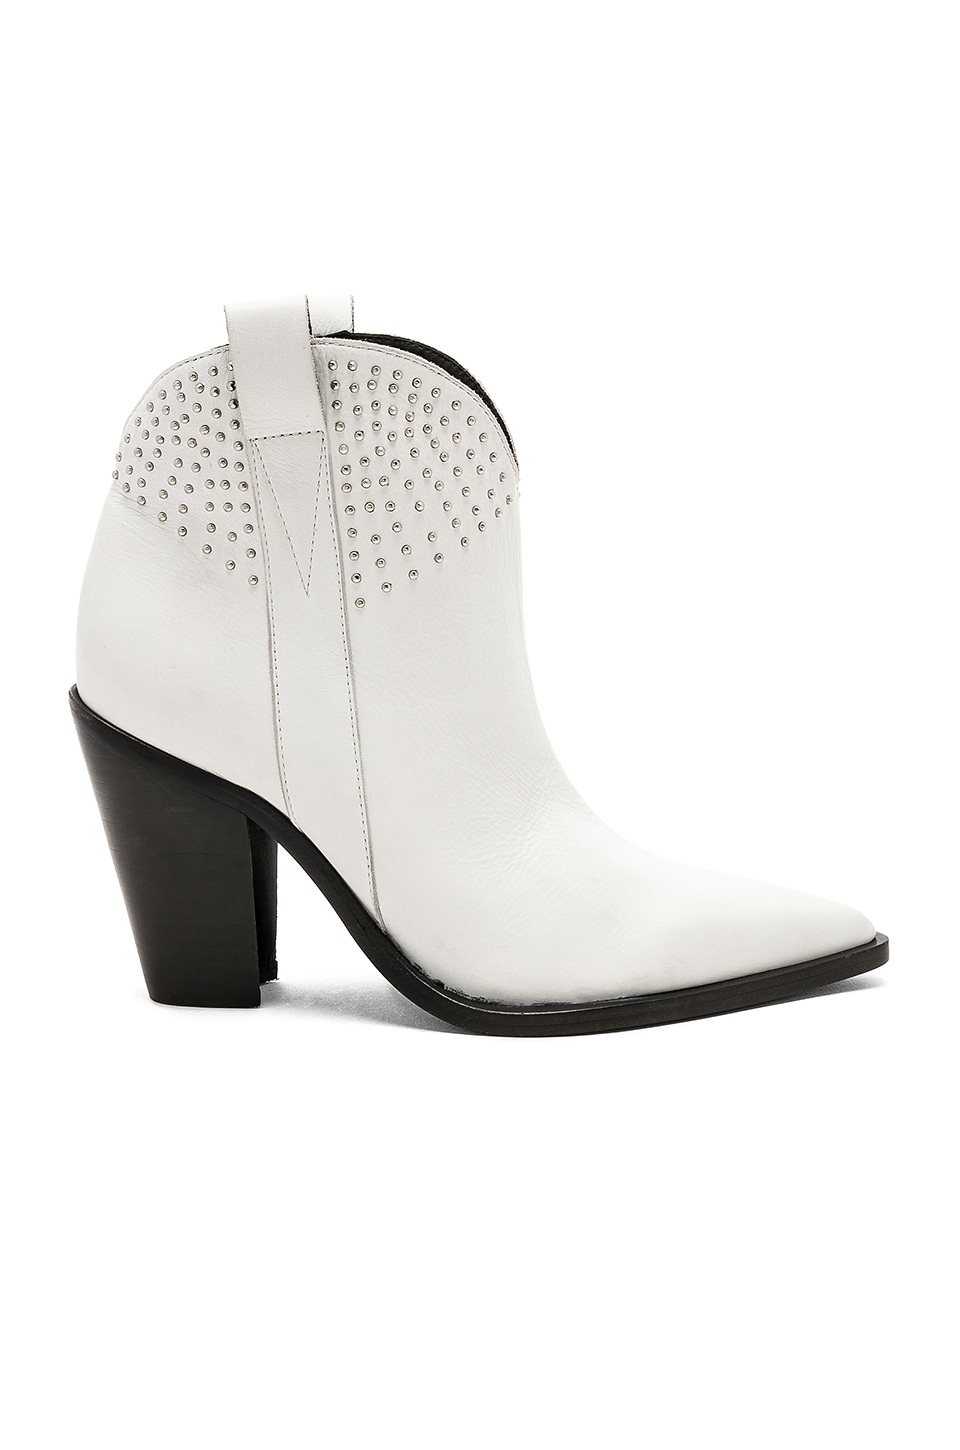 Sigerson Morrison Kalie Boot in White